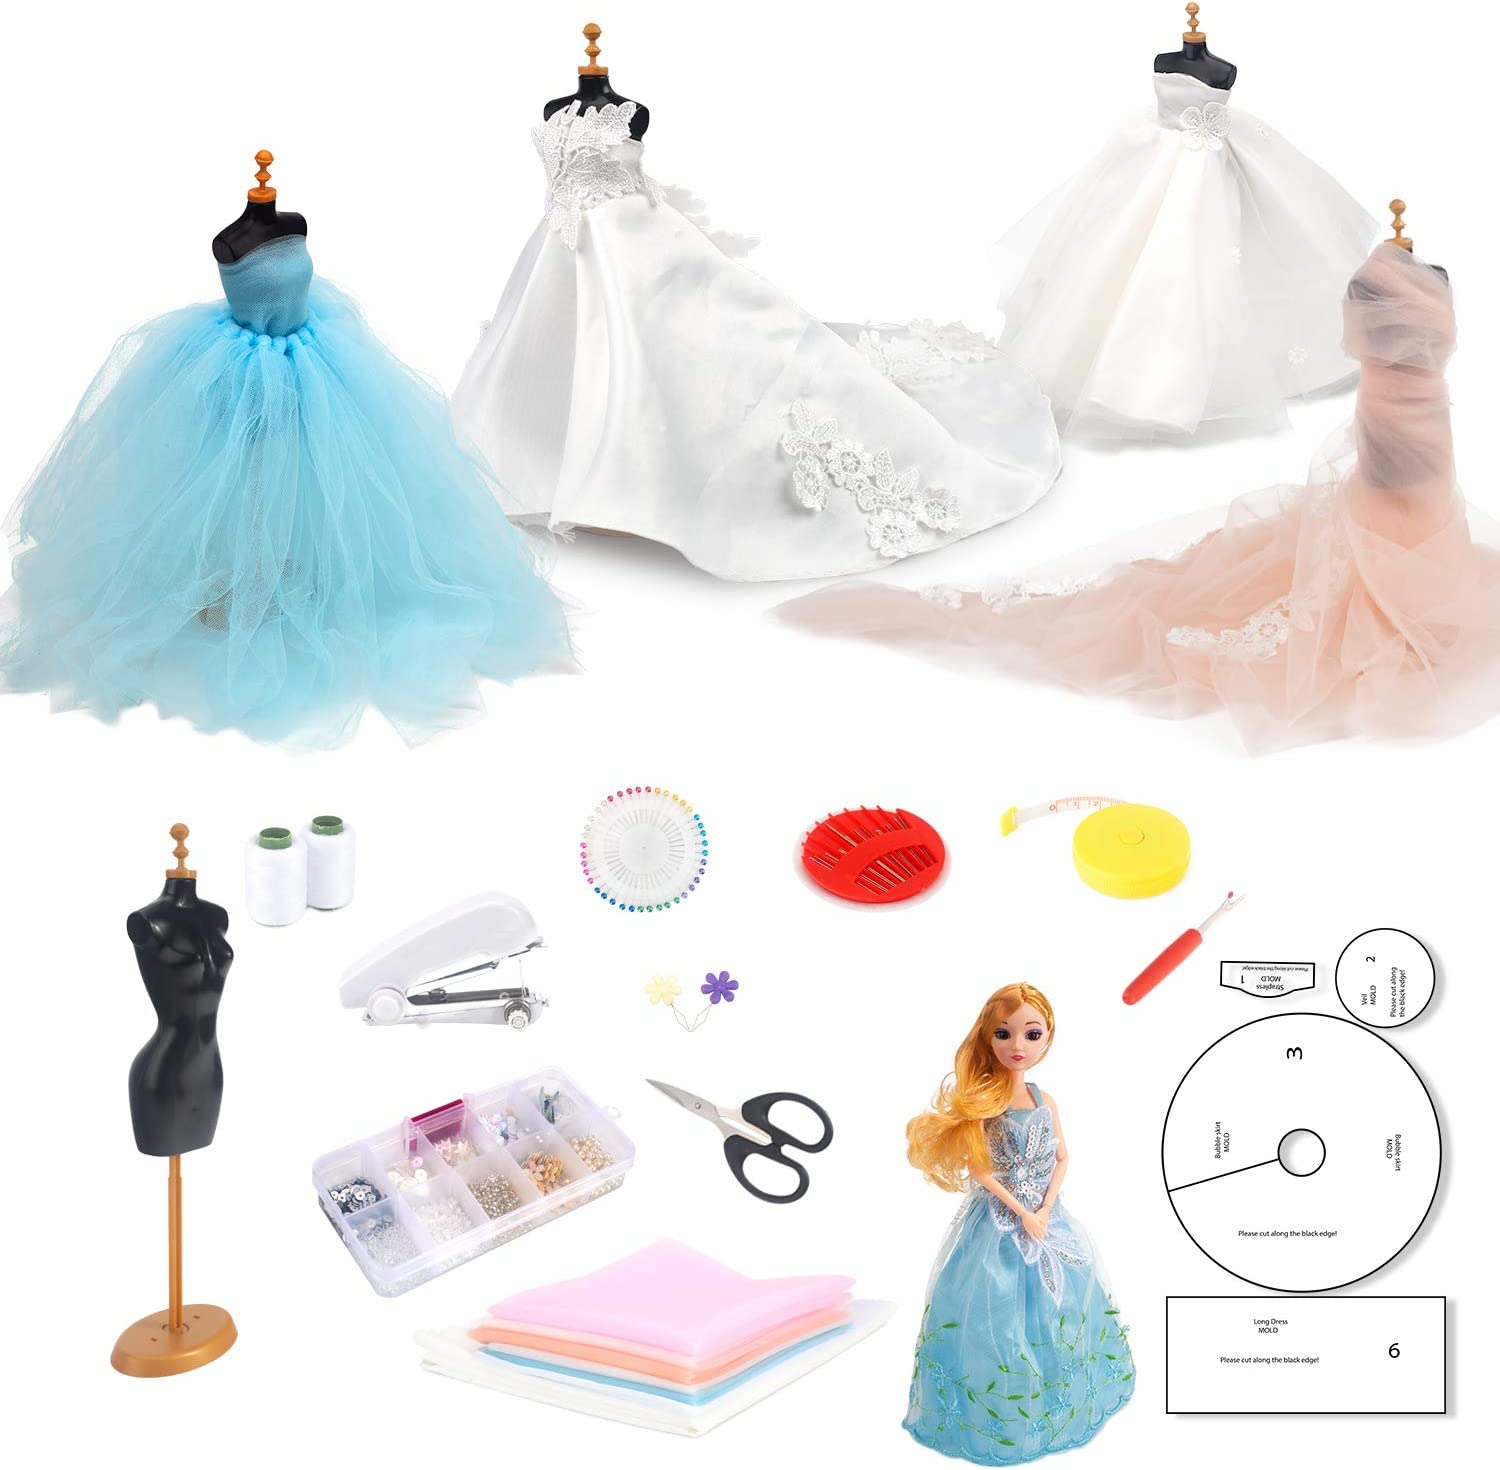 Amazon Com Tesmains Fashion Wedding Dress Design Kit Design And Sewing Kit For Teenagers Kids Girls Adults Toys Games